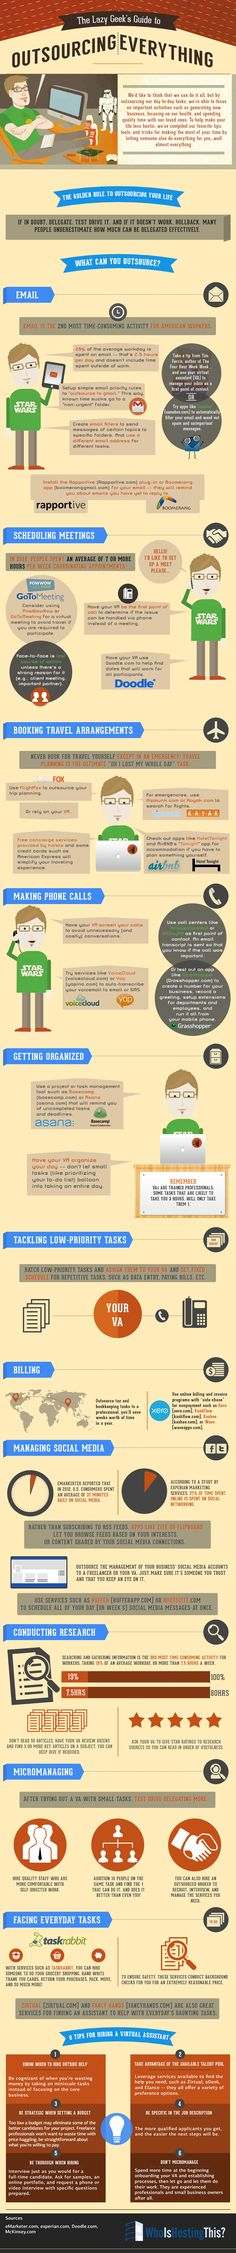 The Lazy Geek's Guide to Outsourcing Everything [Infographic]